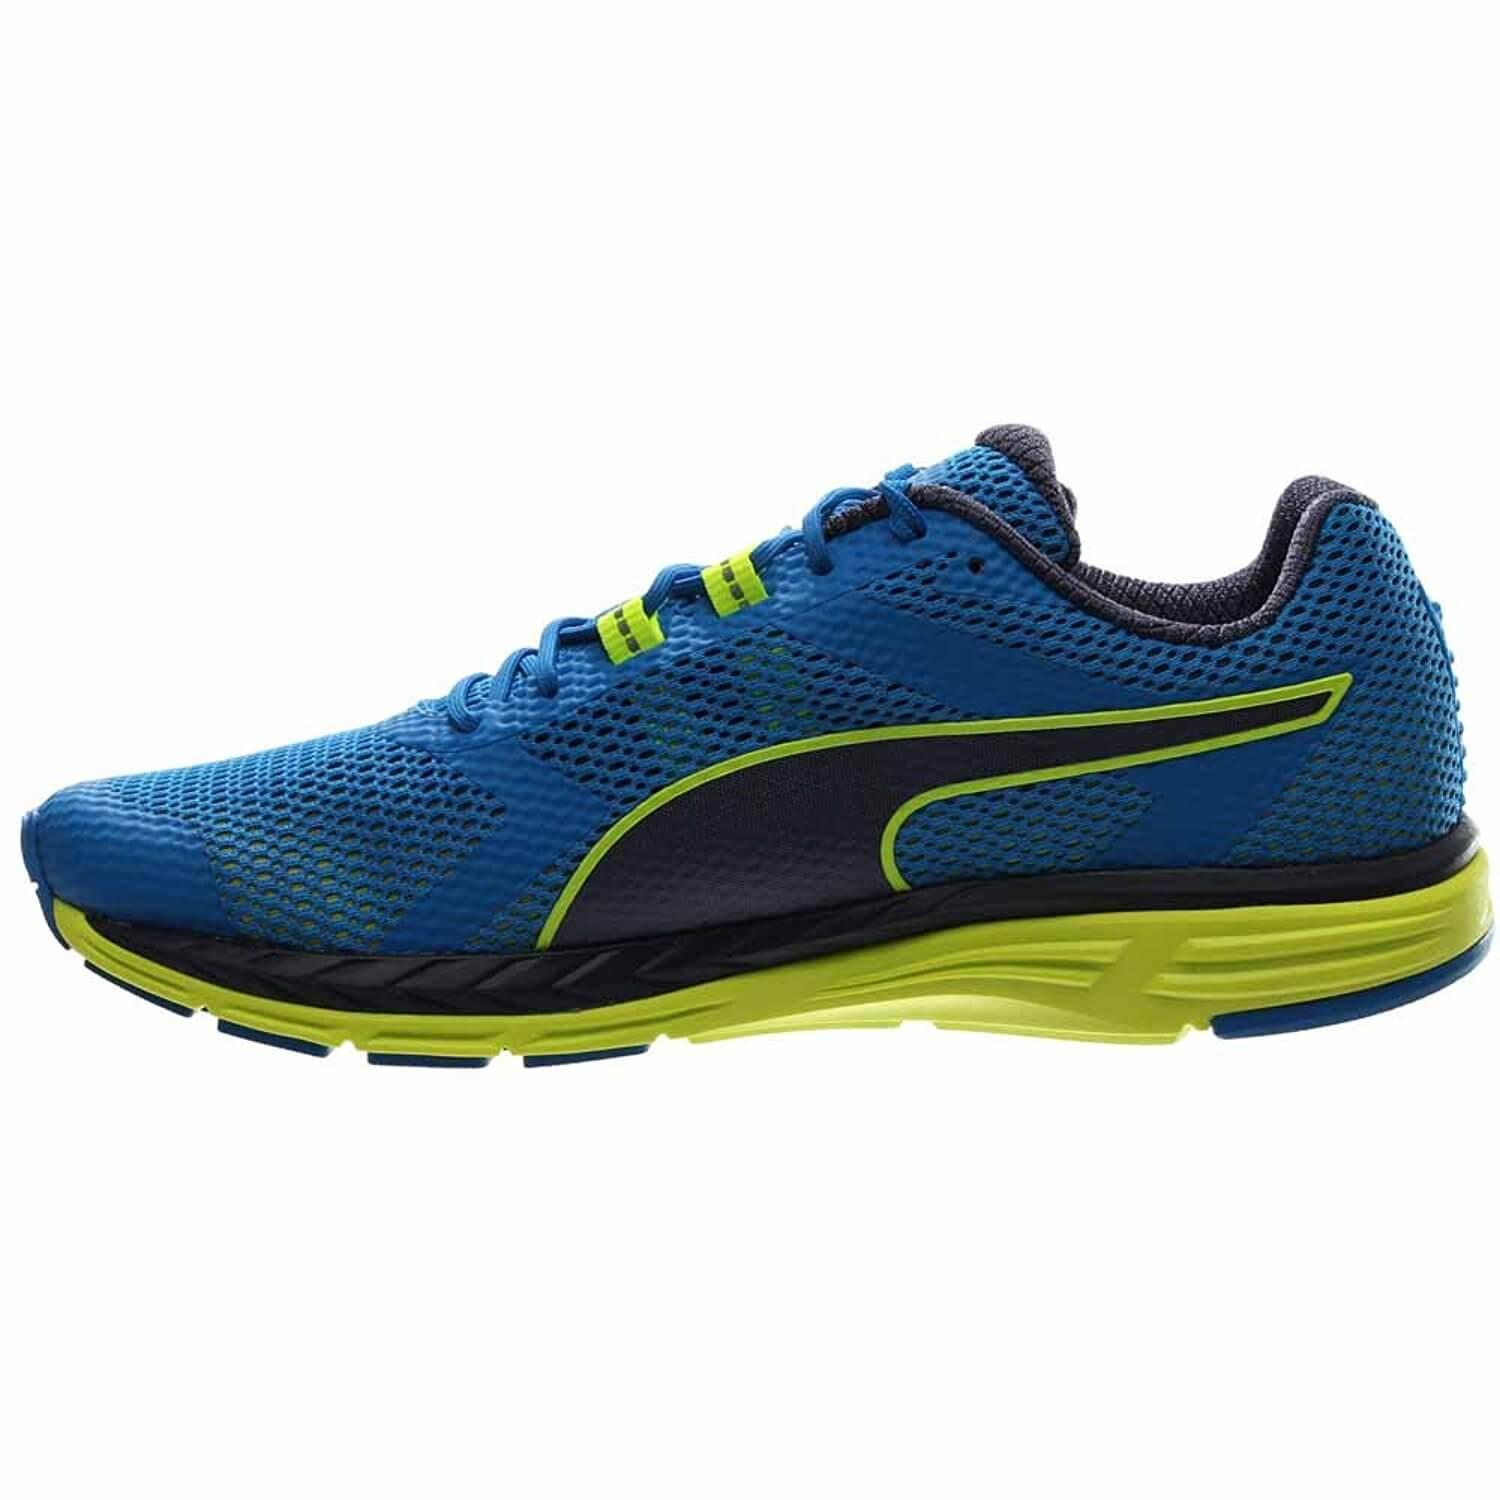 6229ade6d5 Puma Speed 500 Ignite Review - Buy or Not in Feb 2019